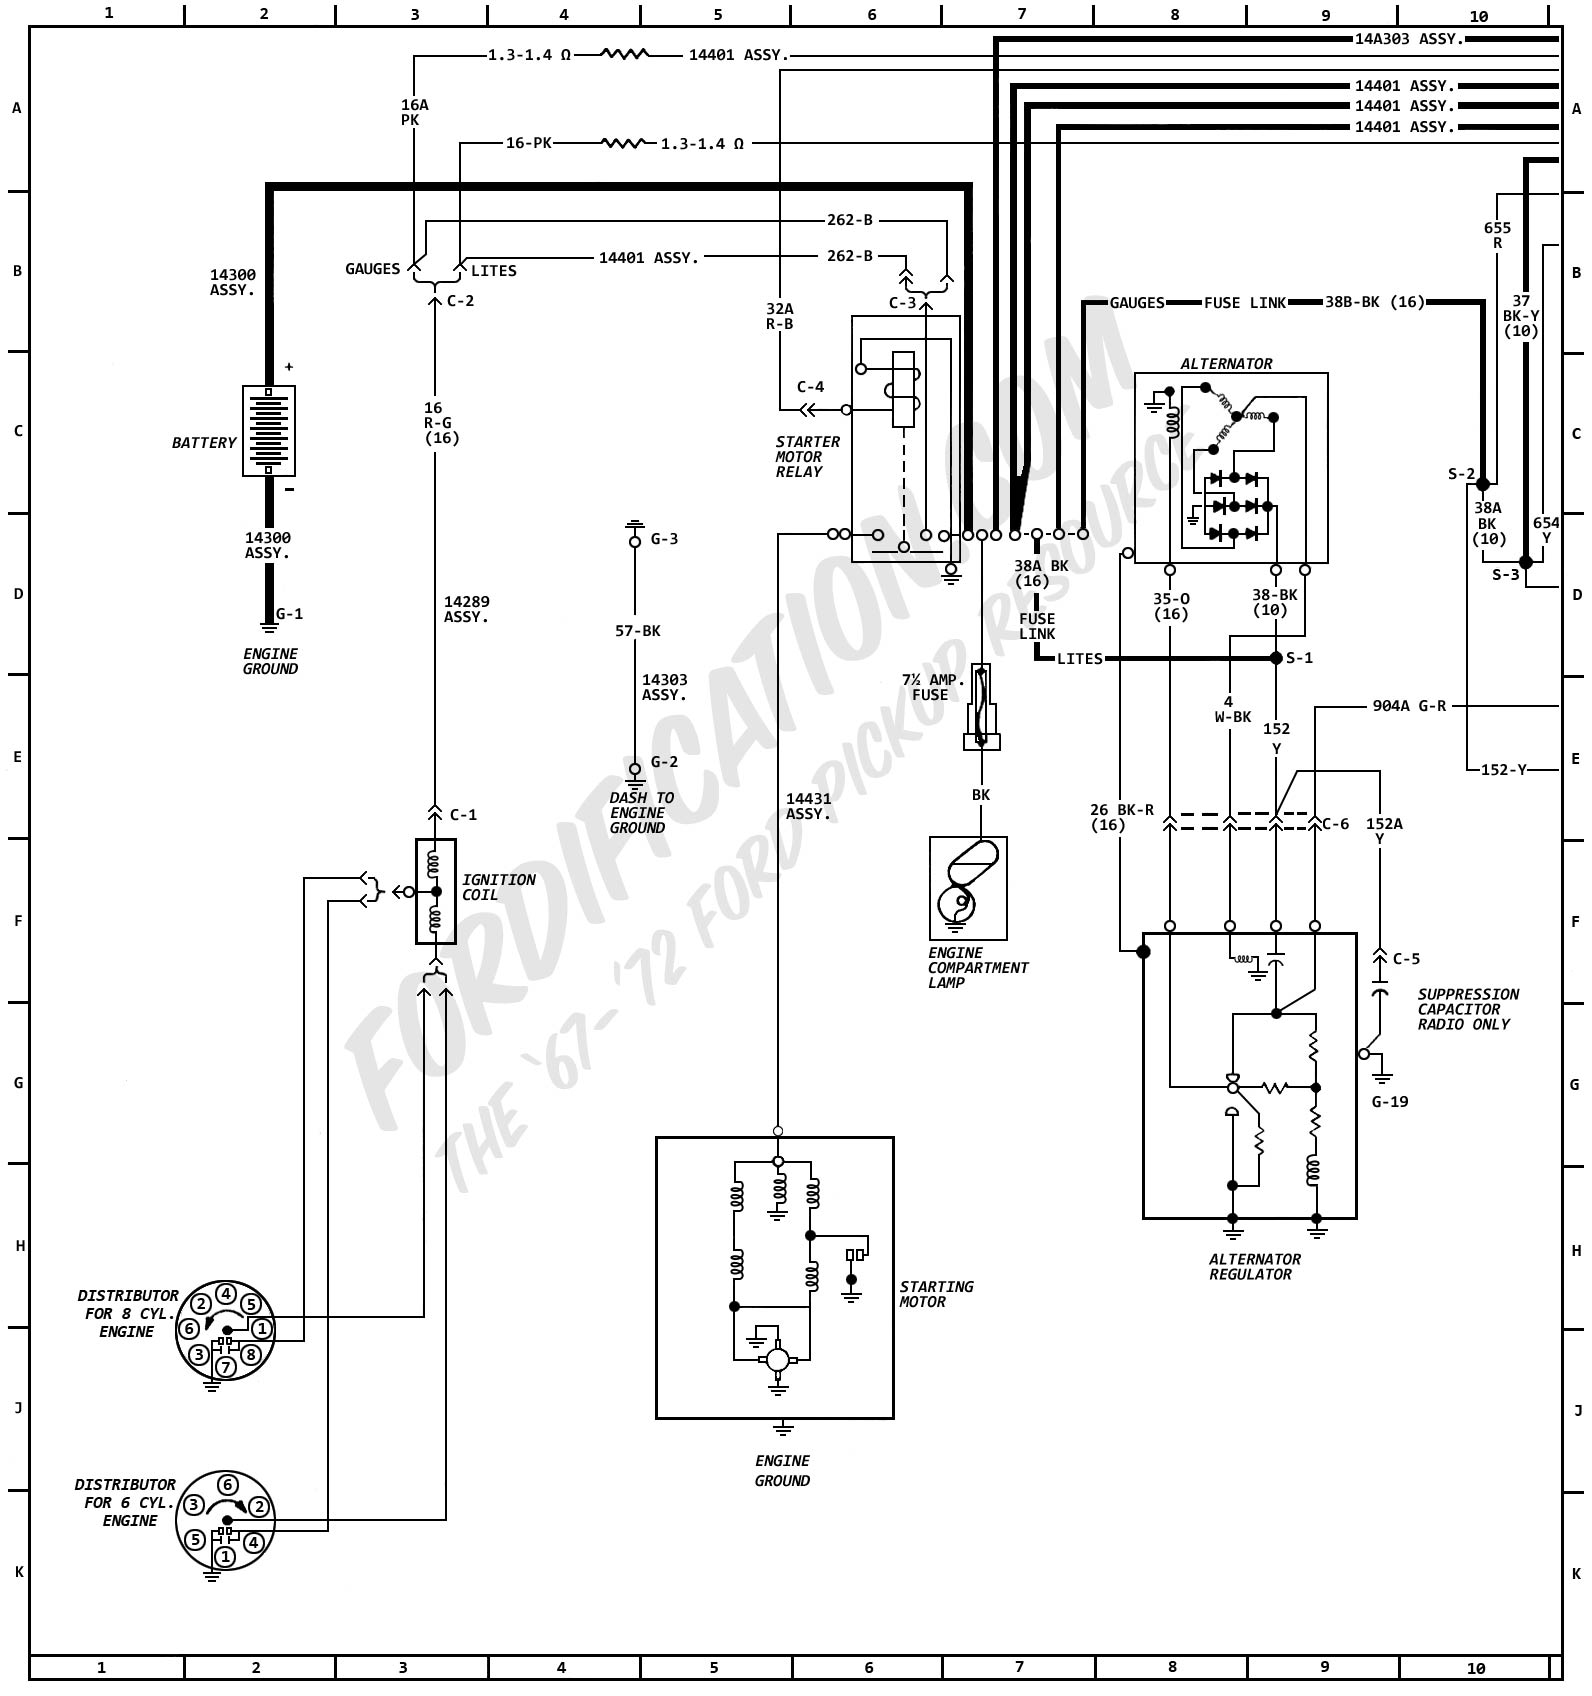 1968 Mustang Turn Signal Switch Diagram Wiring Schematic Reinvent Ford F100 1972 Truck Diagrams Fordification Com Rh Heater